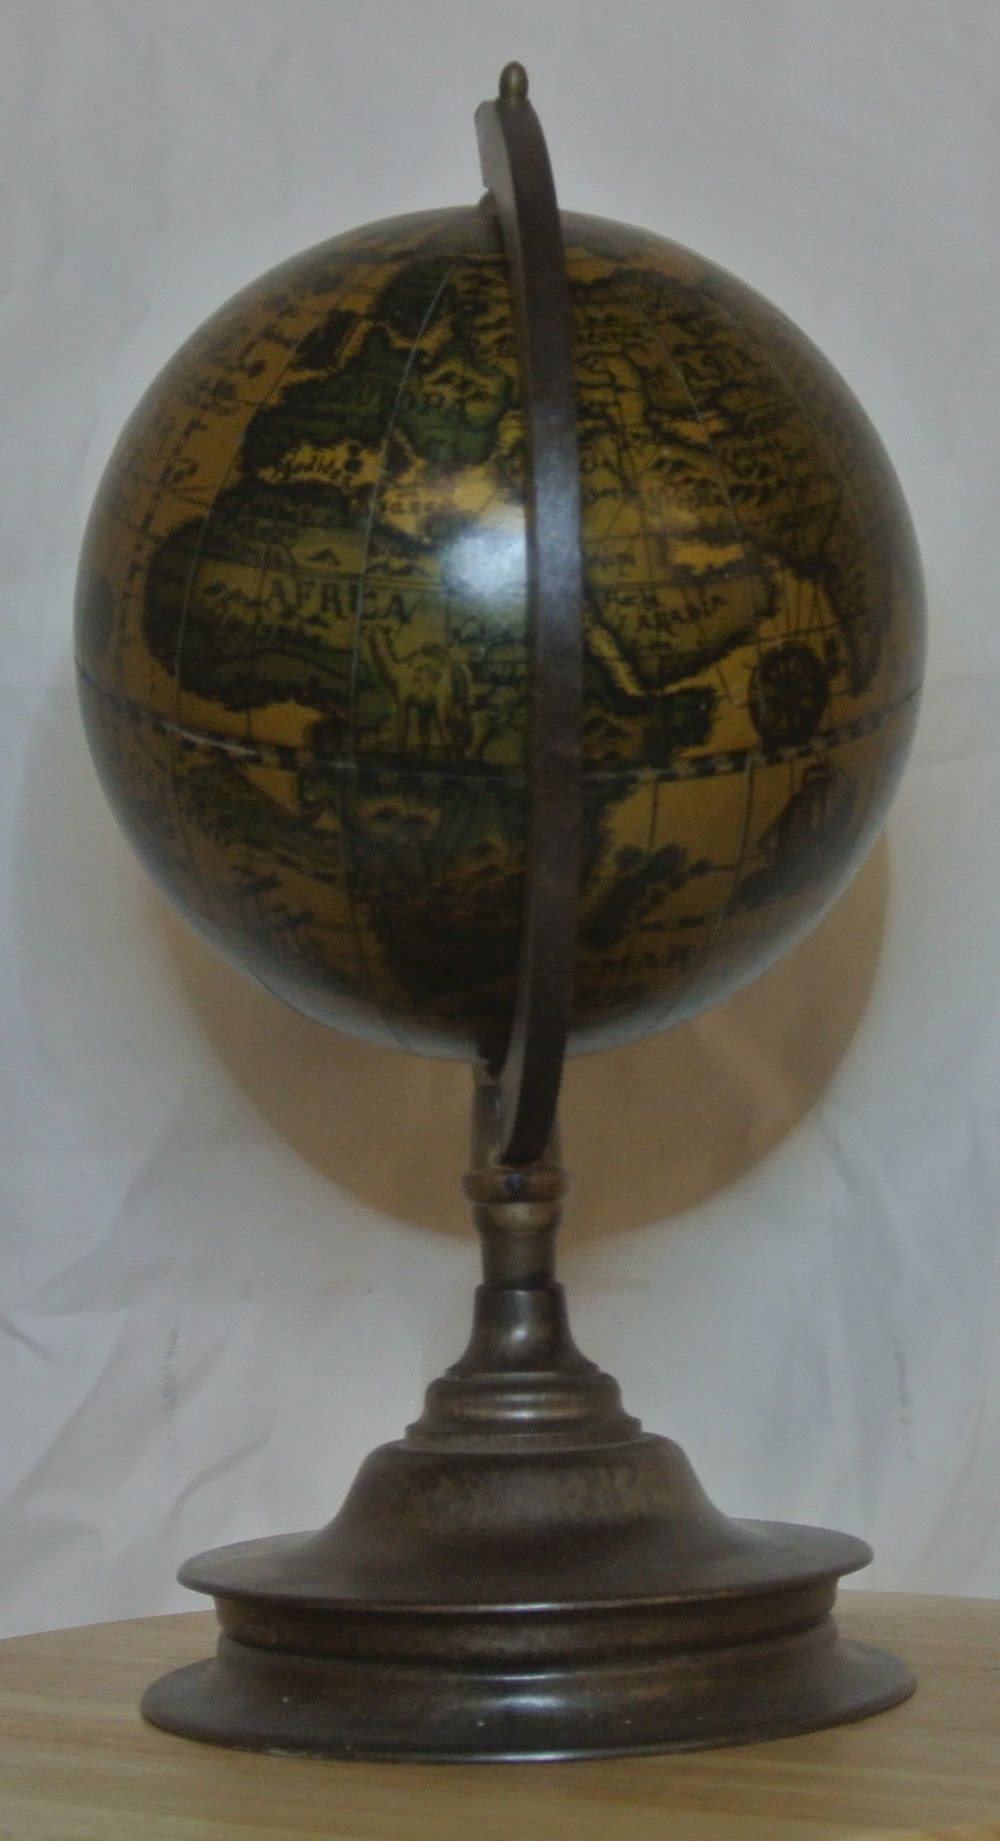 Lot 57: An antique style globe with bakelite base.